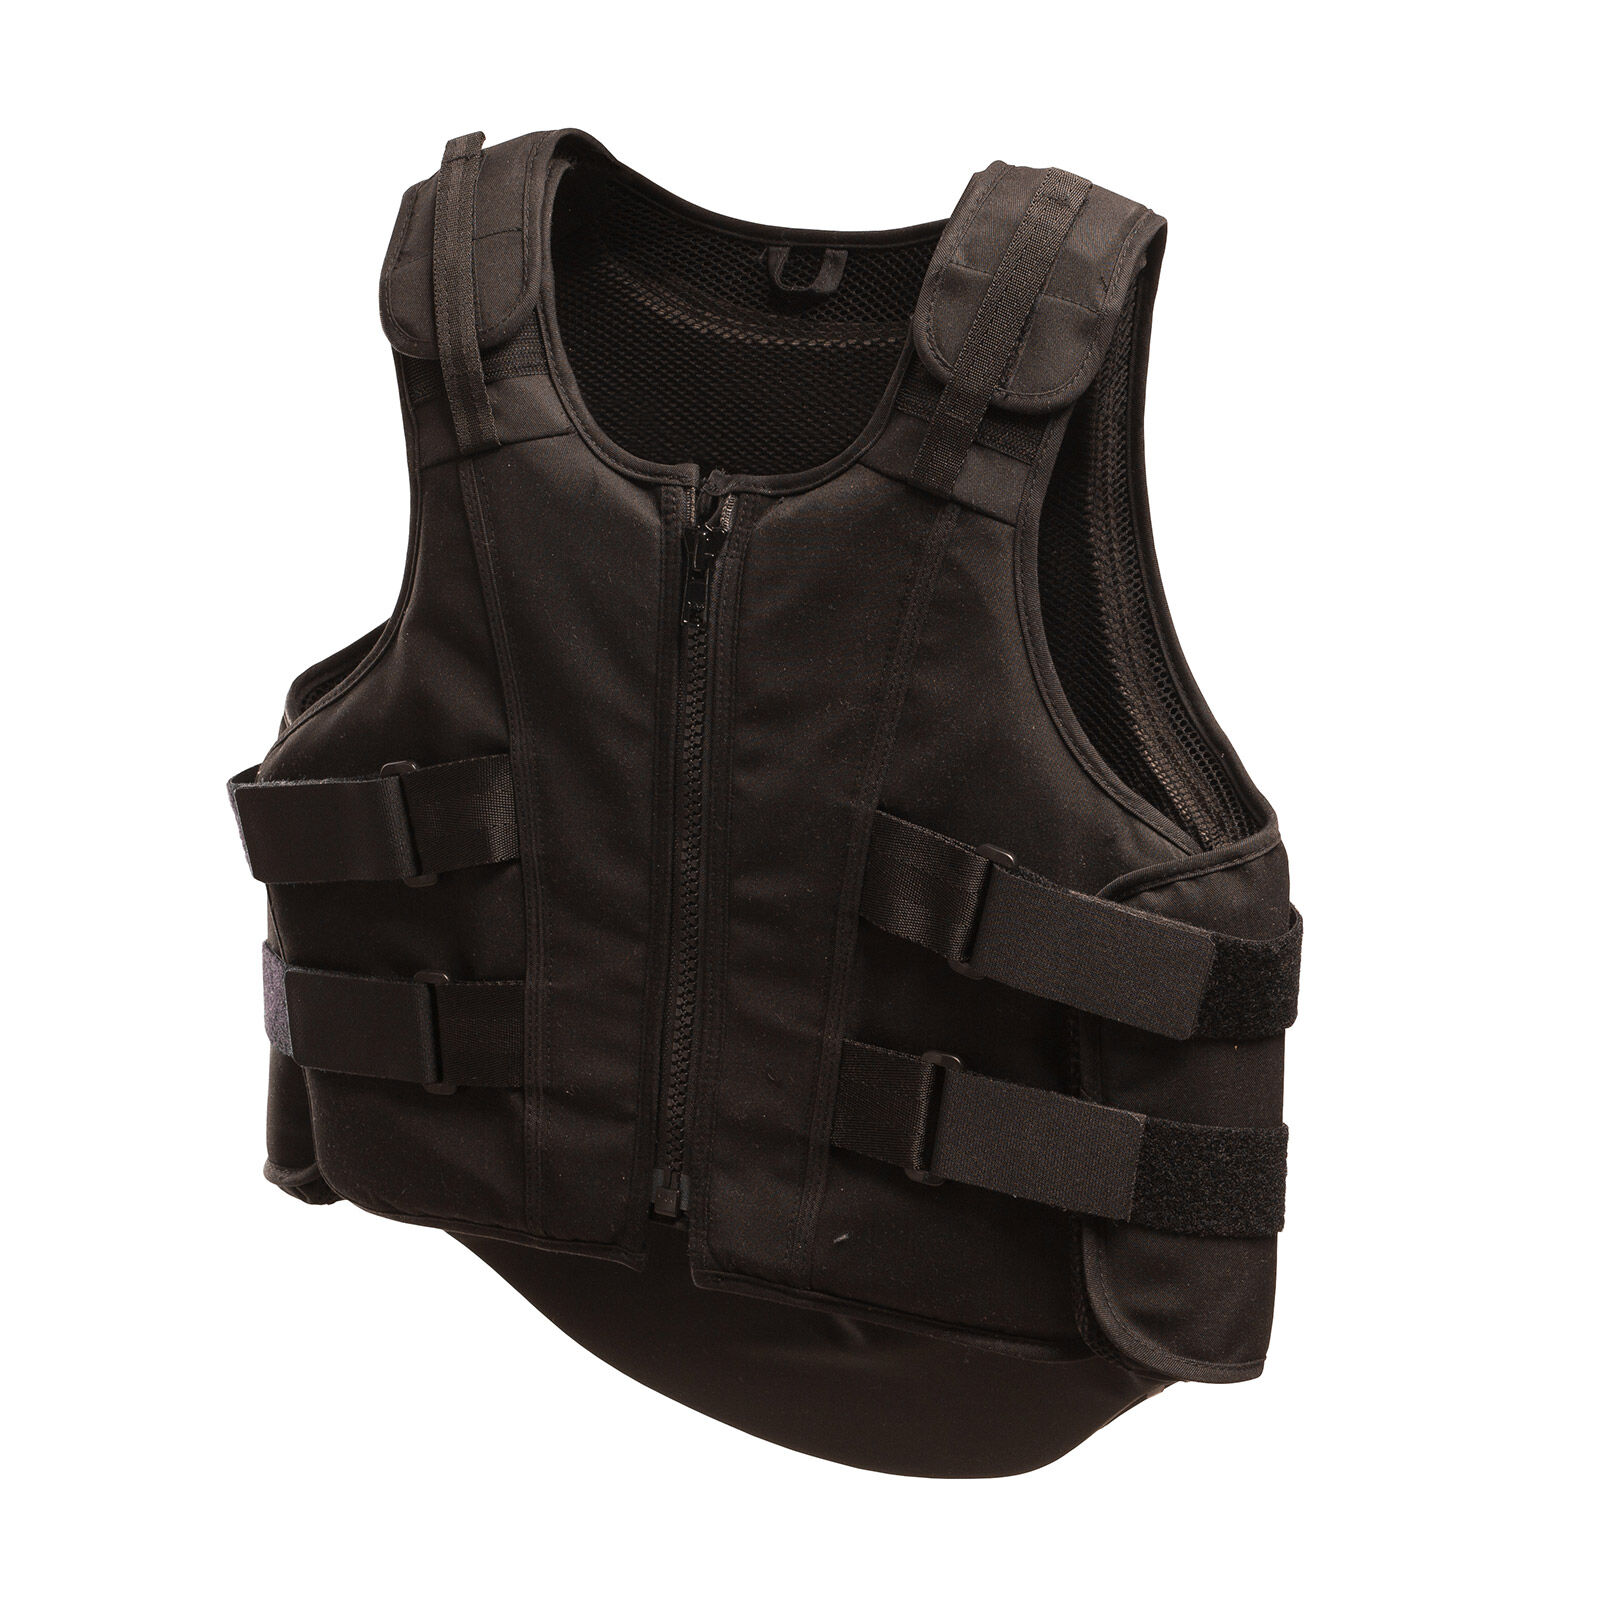 Black *BEST PRICE*  Safety 100 Kids Horse Riding Body Protector